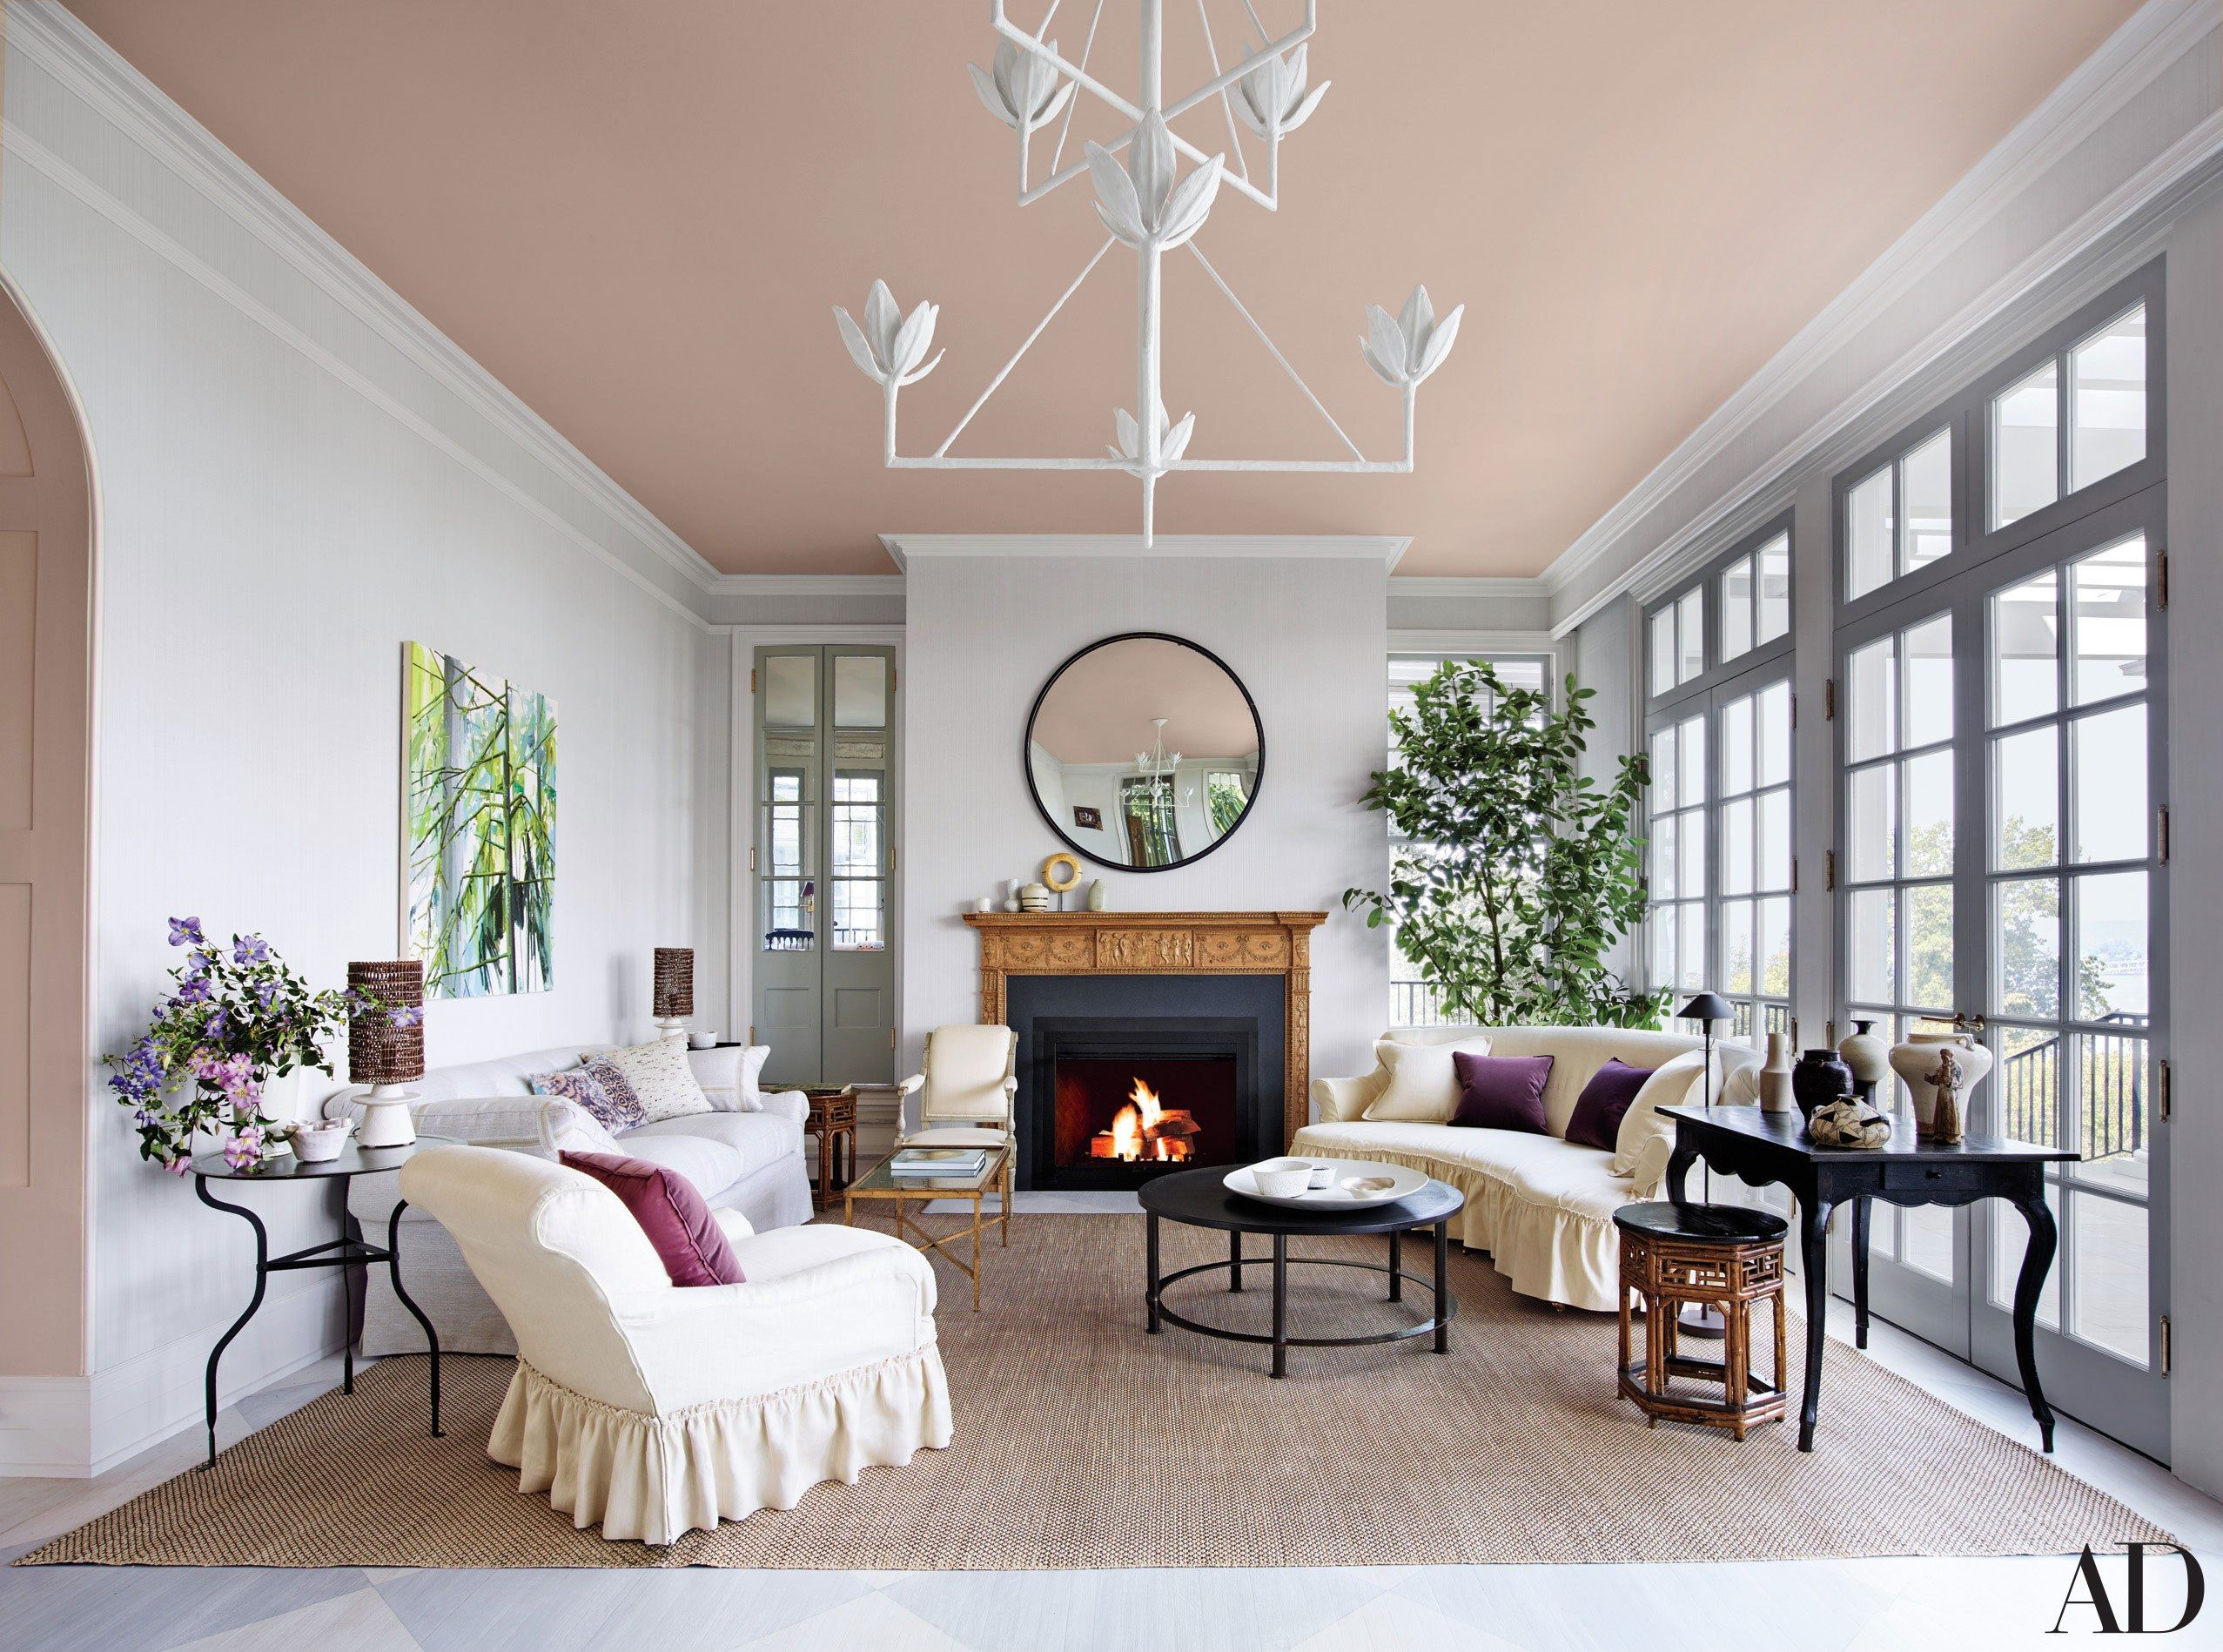 get 20 painted ceilings ideas on pinterest without signing up